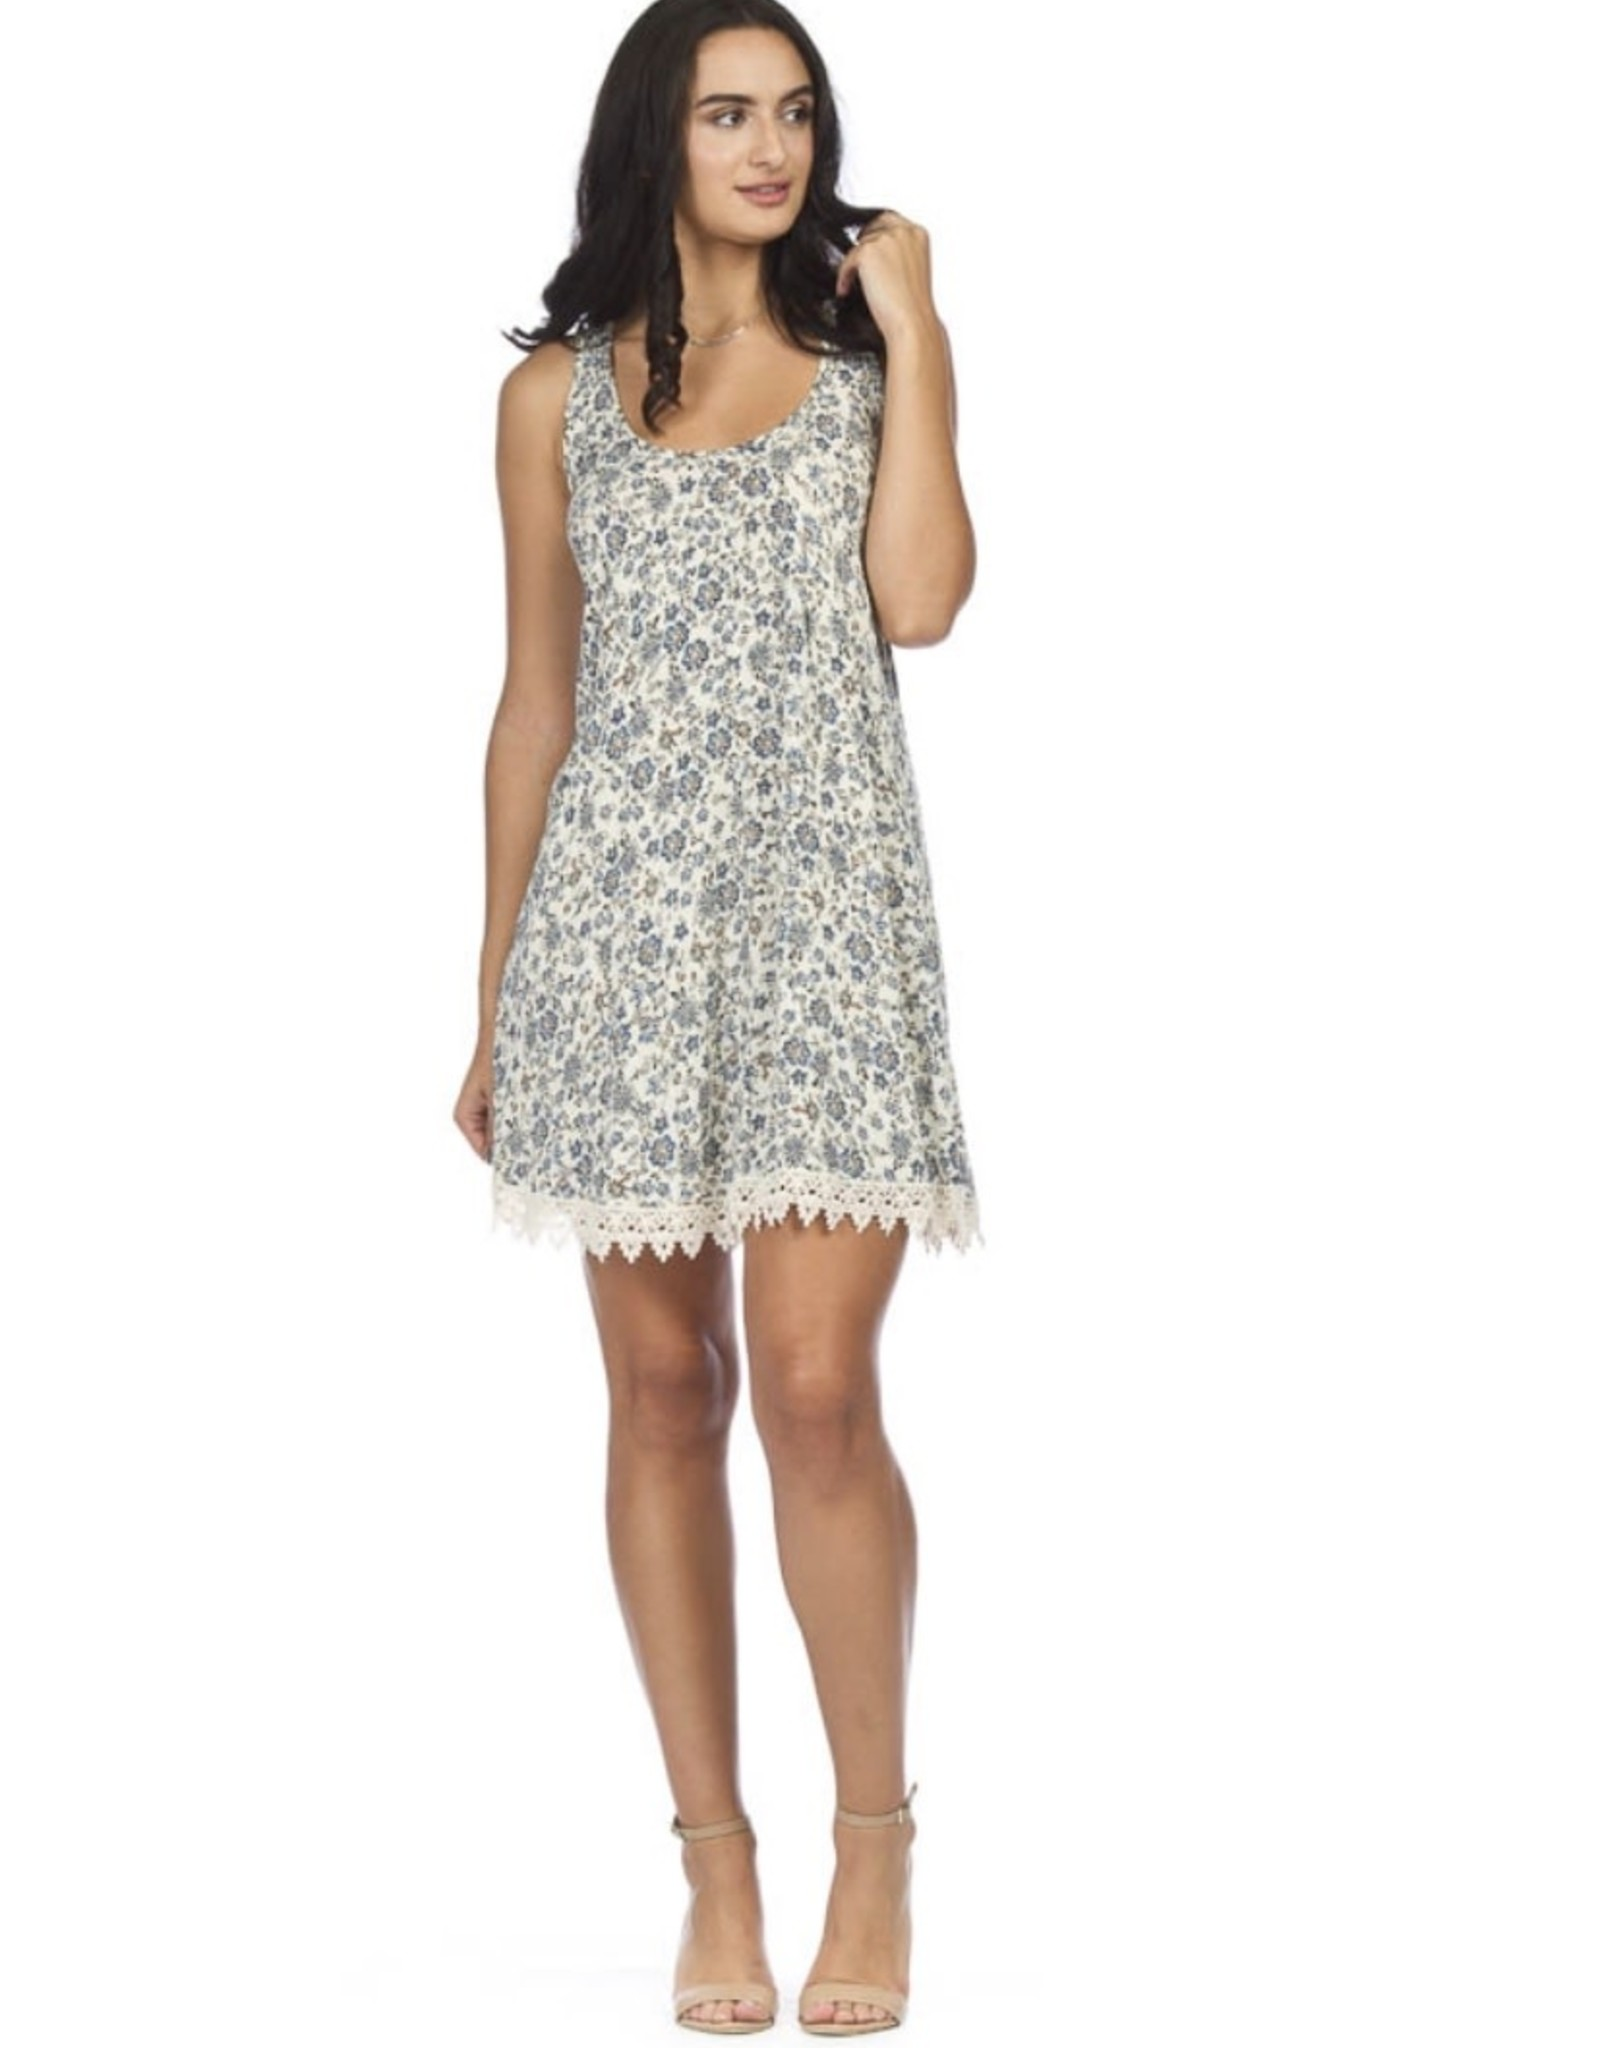 A-Line with lace dress